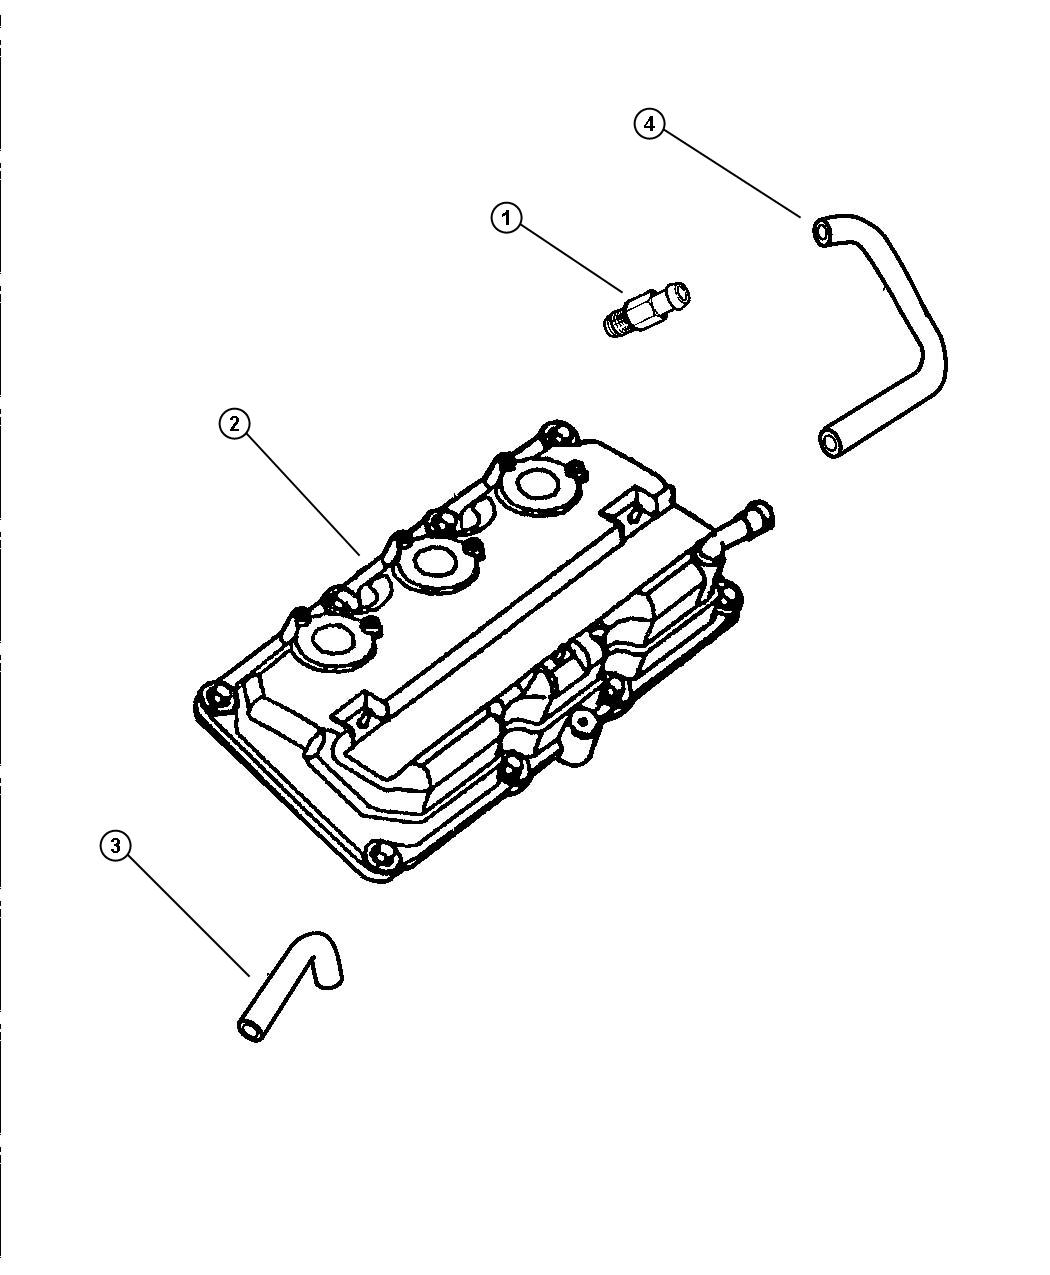 2000 Chrysler Concorde Cover. Cylinder head. Left, right